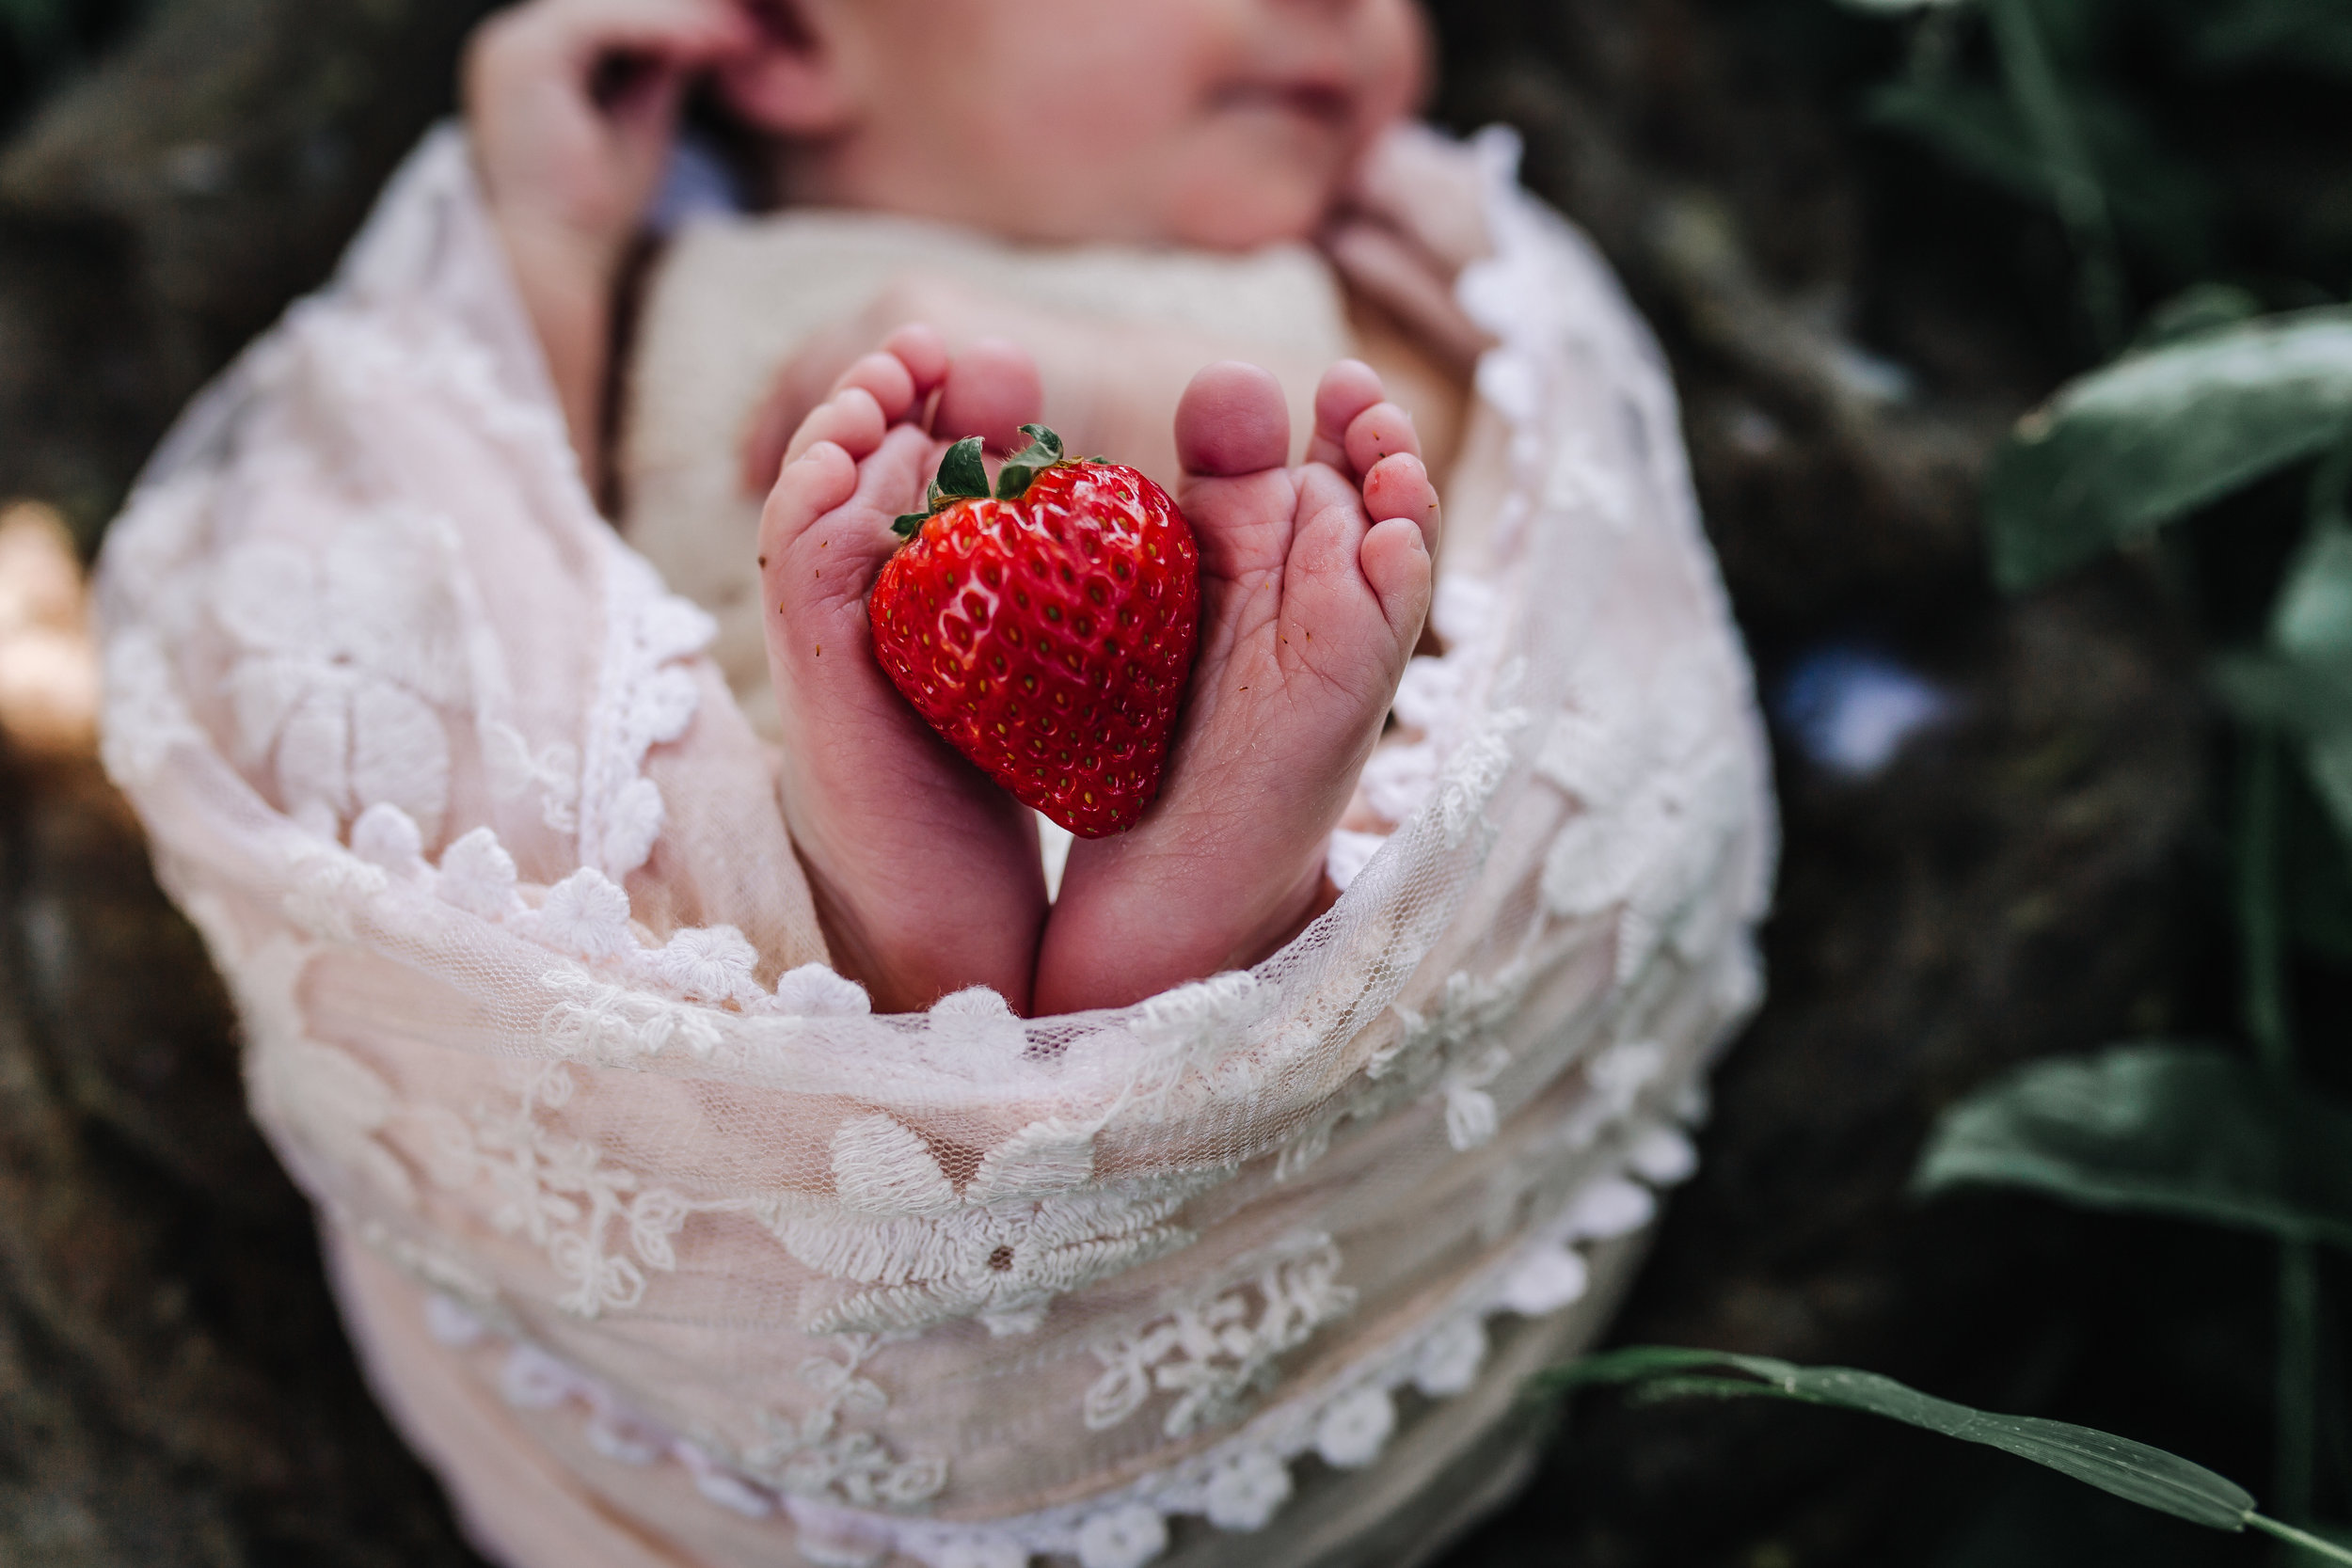 Newborn Baby Girl in a lace romper swaddled in pink lace in a garden with white flowers and red strawberries- detail portrait. A Portrait By Nature's Reward Photography, a San Bernardino Family, Child, and Newborn Baby Photographer.